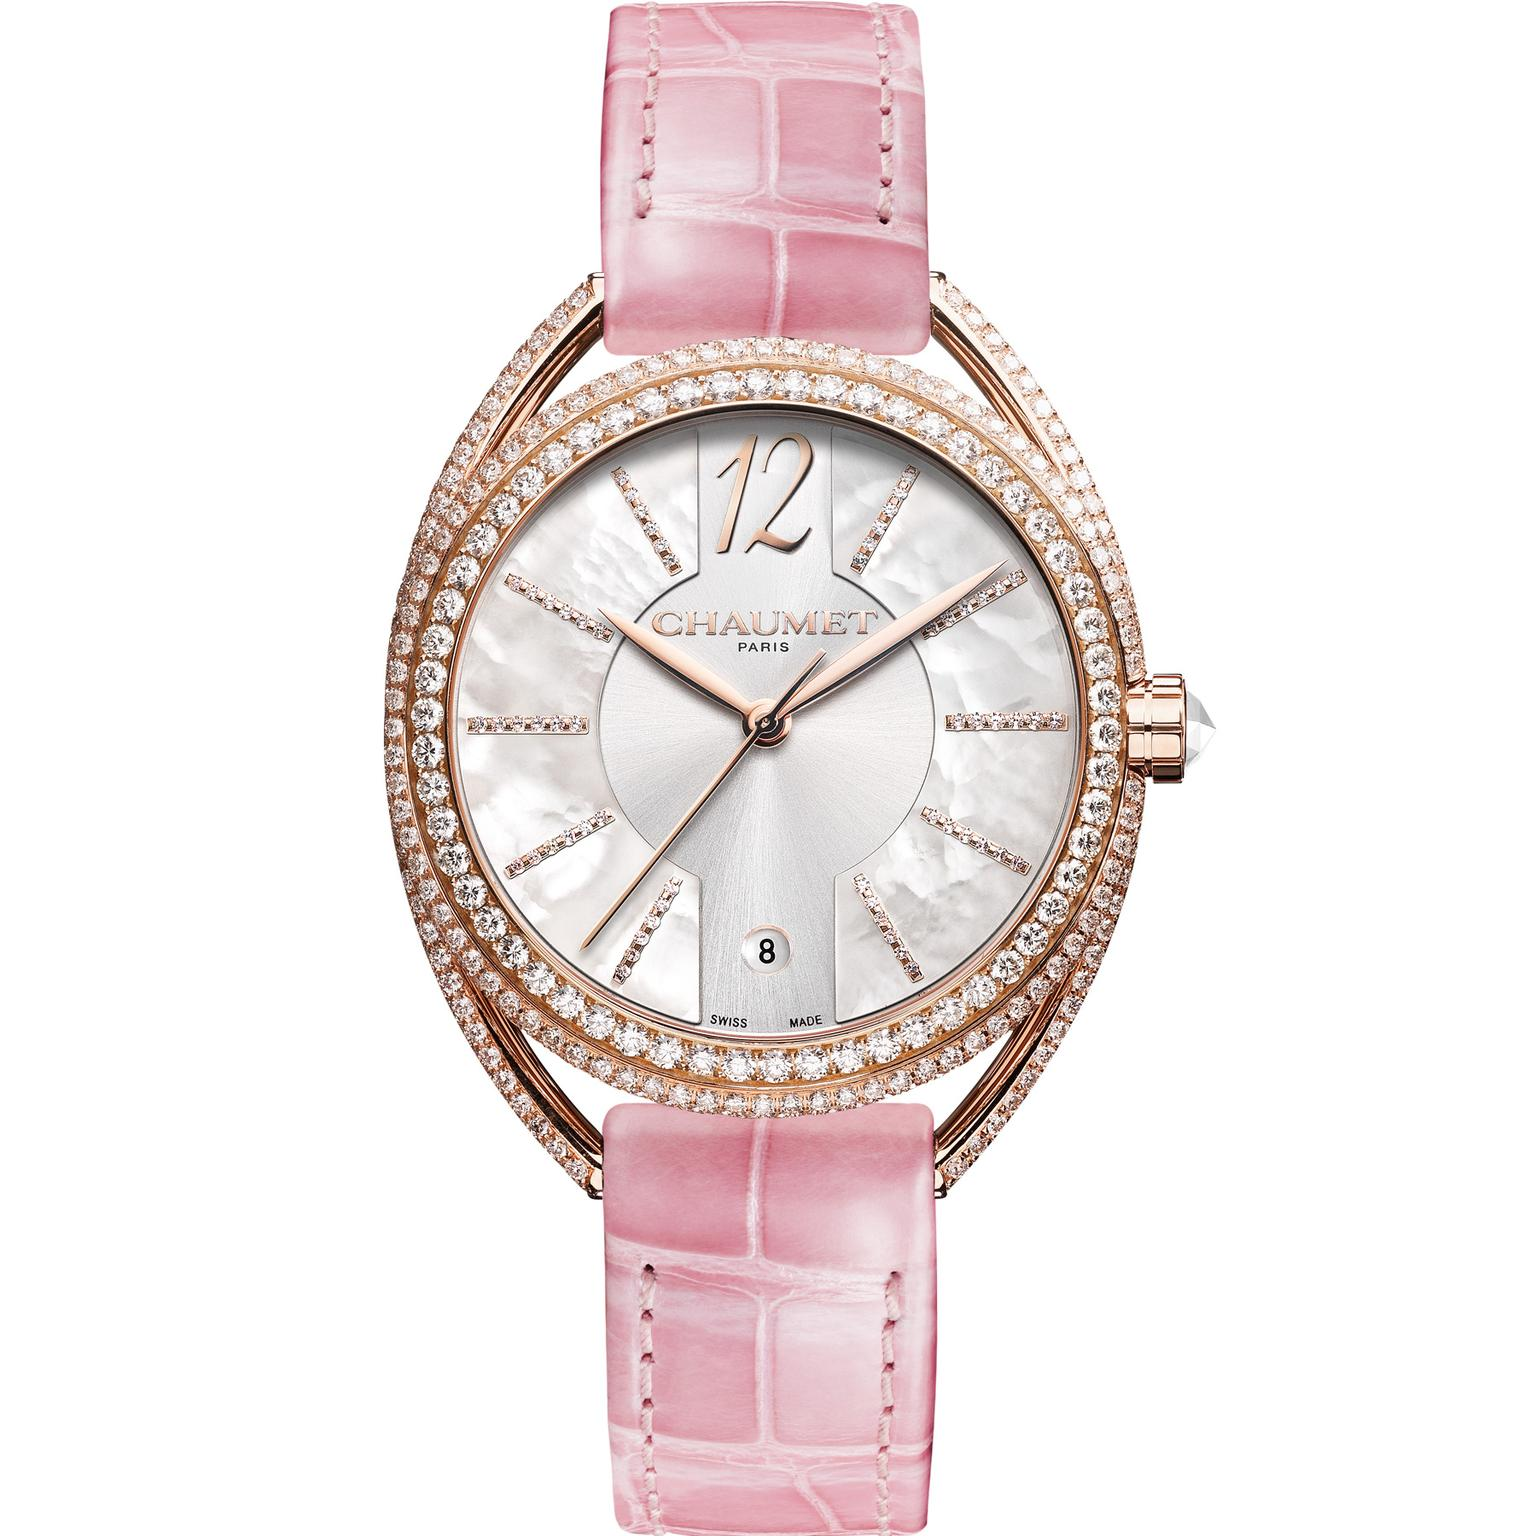 Chaumet Liens Lumière watch in rose gold with diamonds